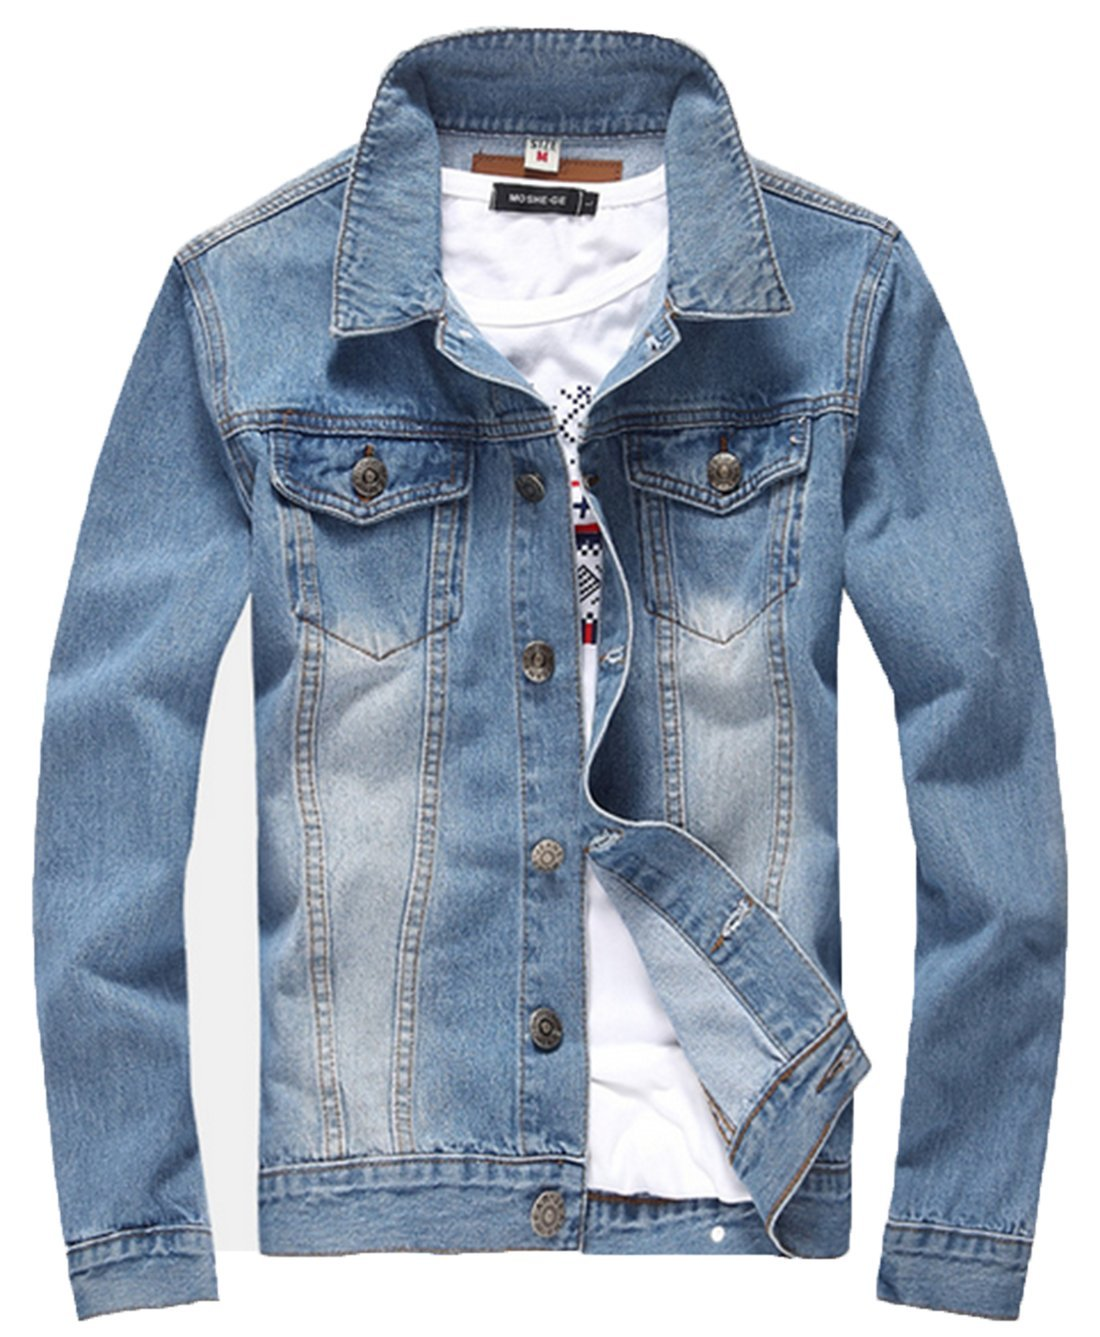 XueYin Men's Denim Jacket Slim Fit(Light Blue,L Size) by XueYin